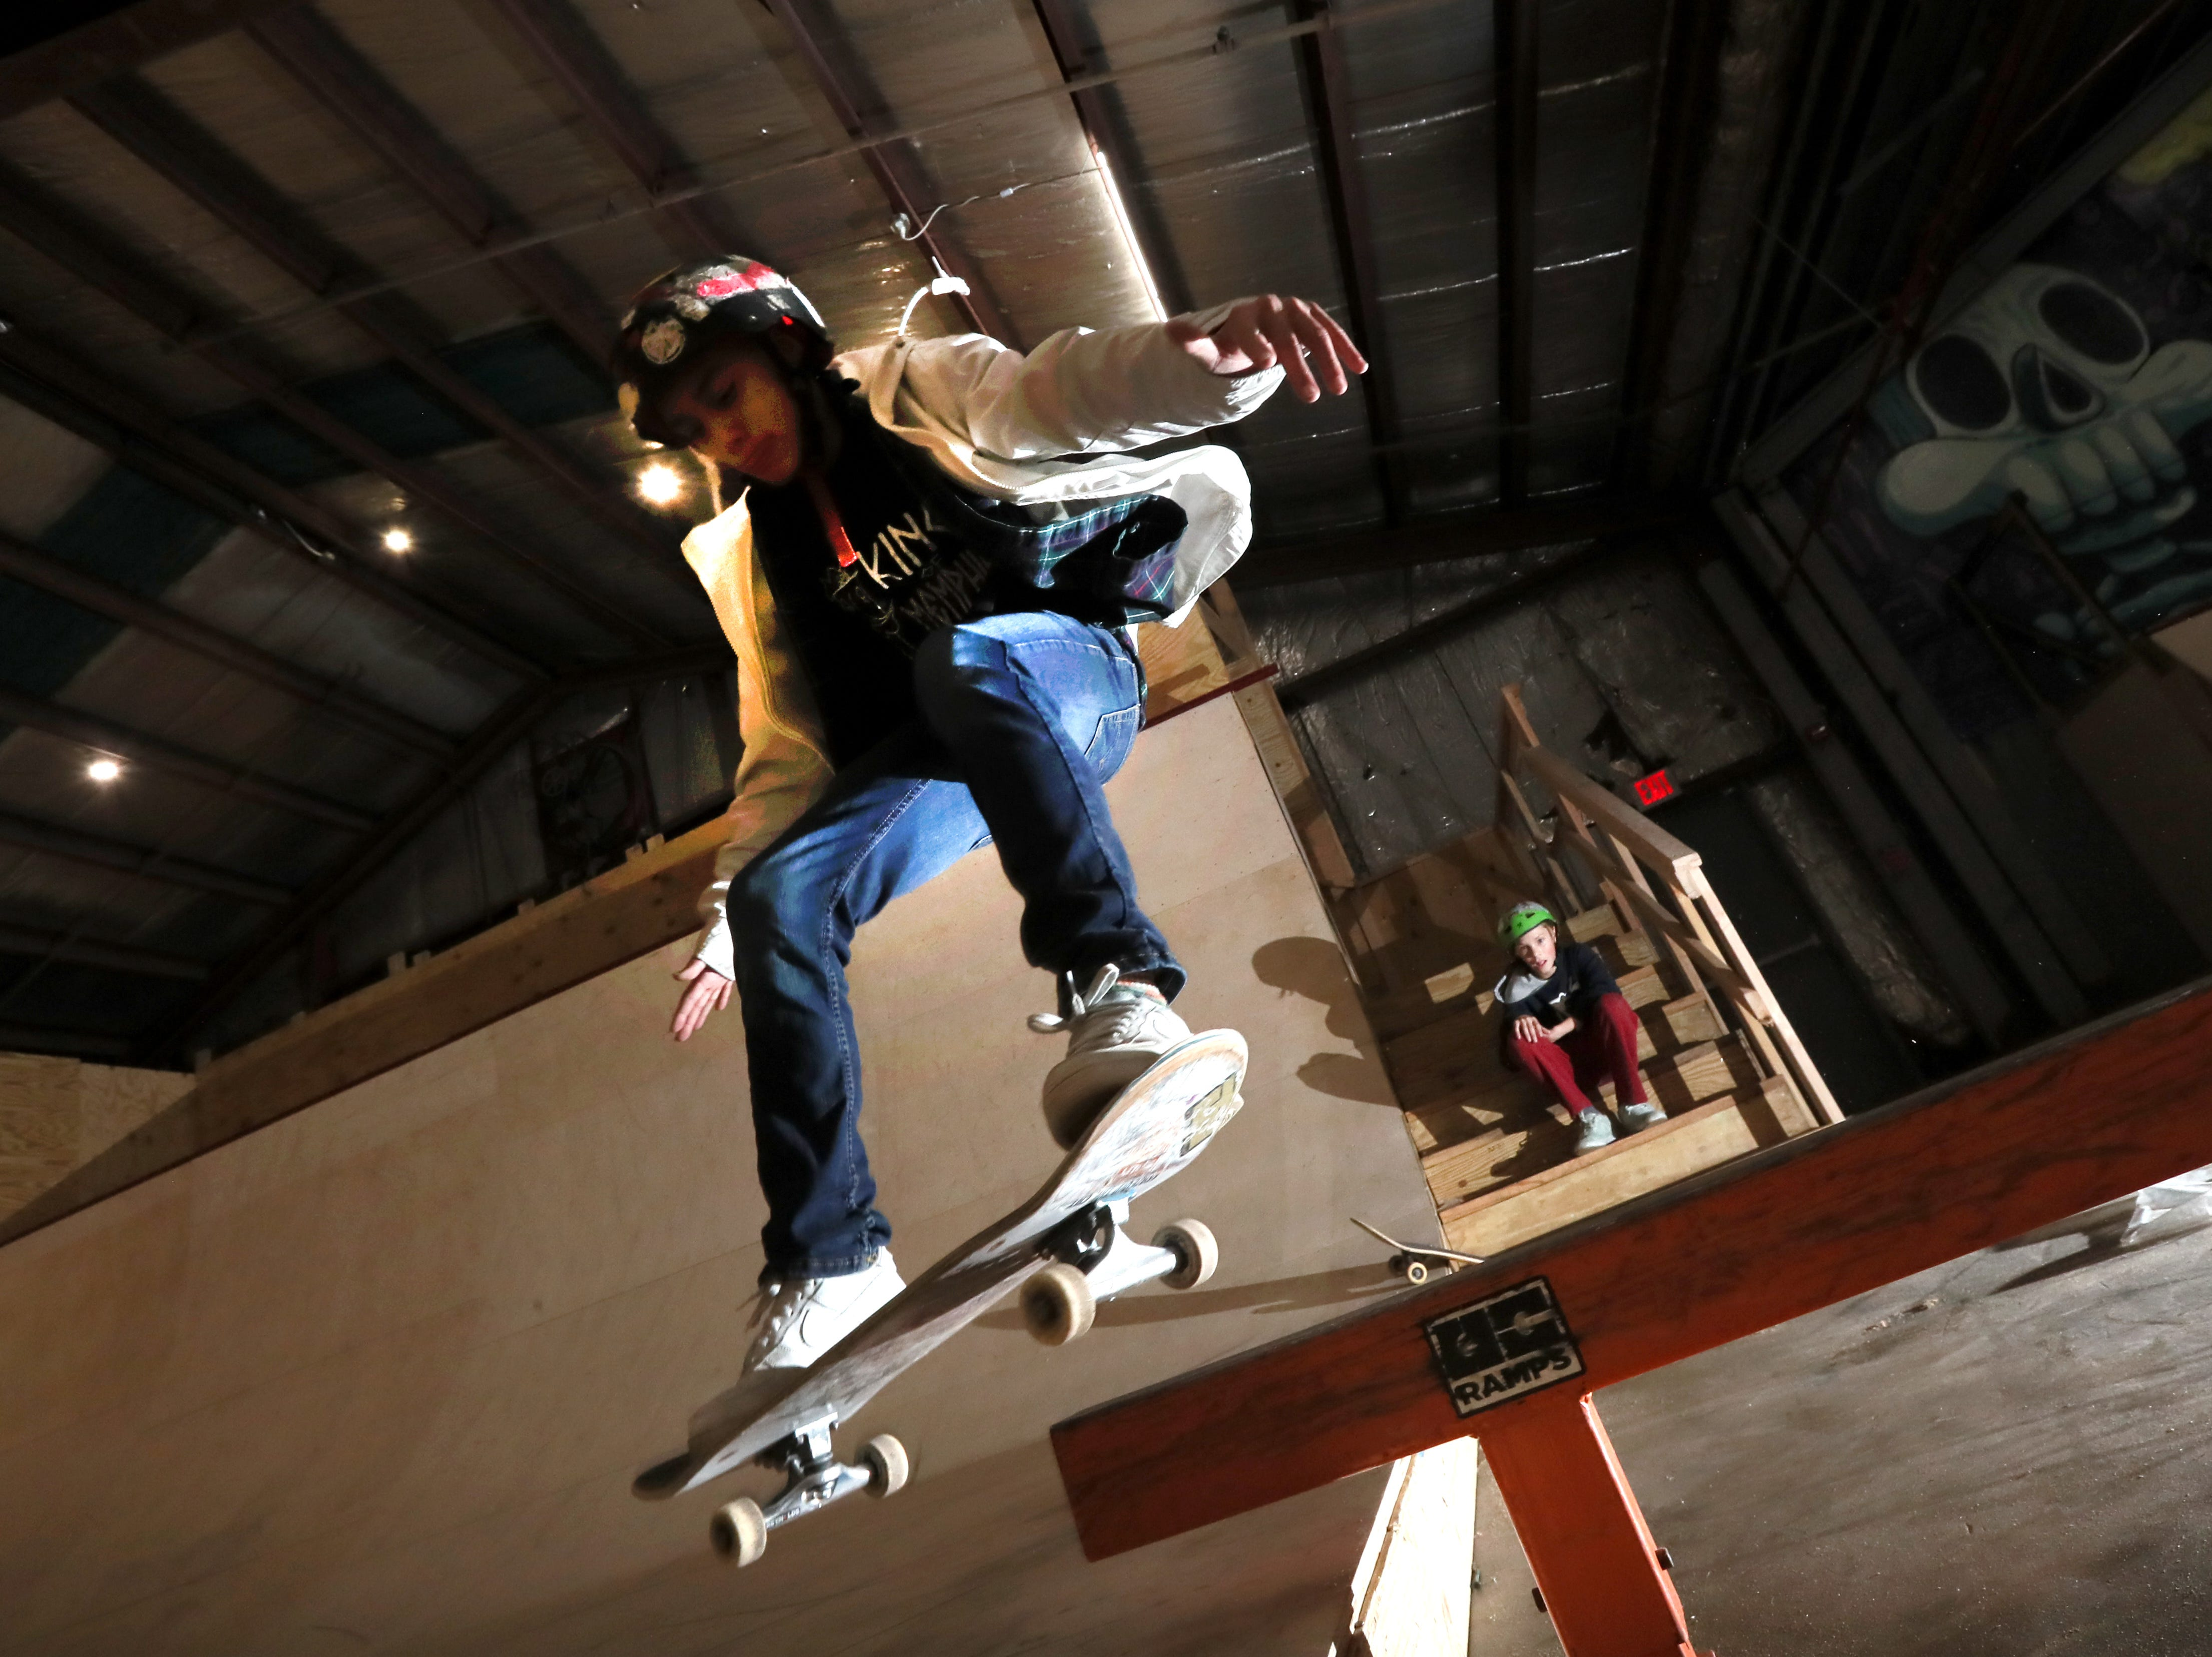 David Binkowitz, 15, rides inside Society Skatepark, a joint venture with Contact Skateboard Shop in the Broad Avenue Arts District which held its soft opening on Thursday, Dec. 20, 2018.